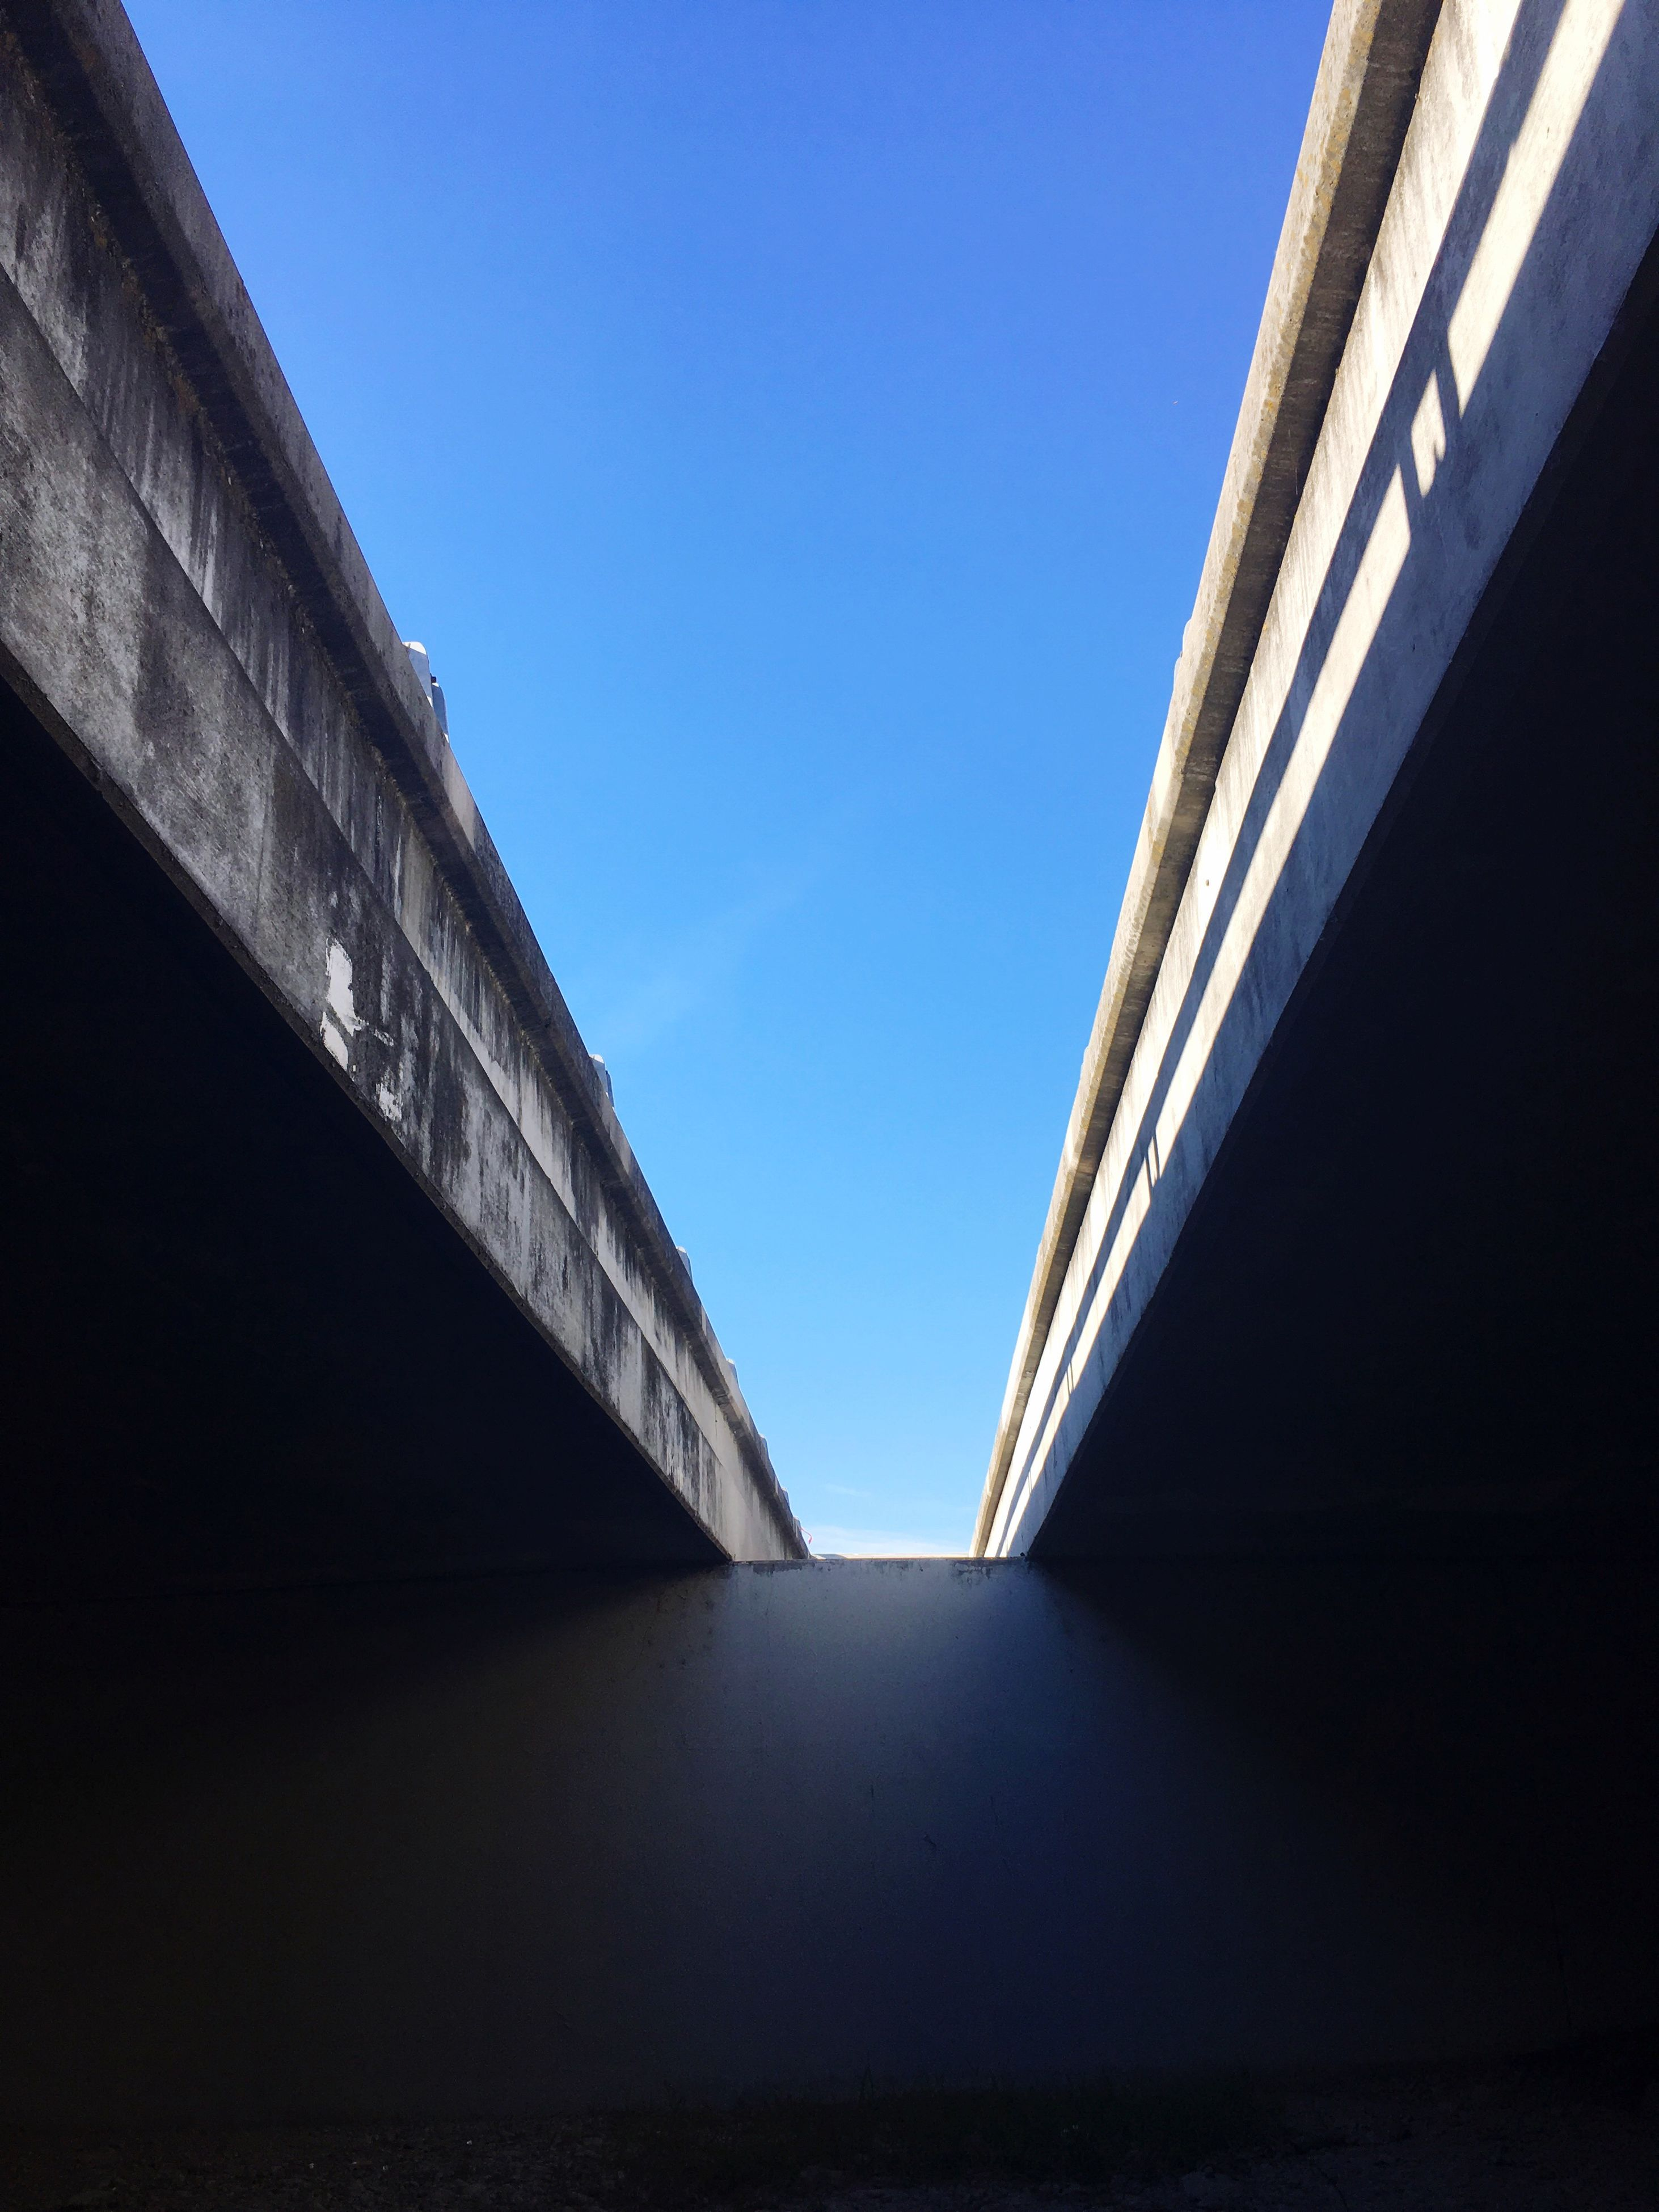 clear sky, architecture, low angle view, built structure, building exterior, blue, diminishing perspective, vanishing point, day, outdoors, the way forward, tall, no people, bridge, geometric shape